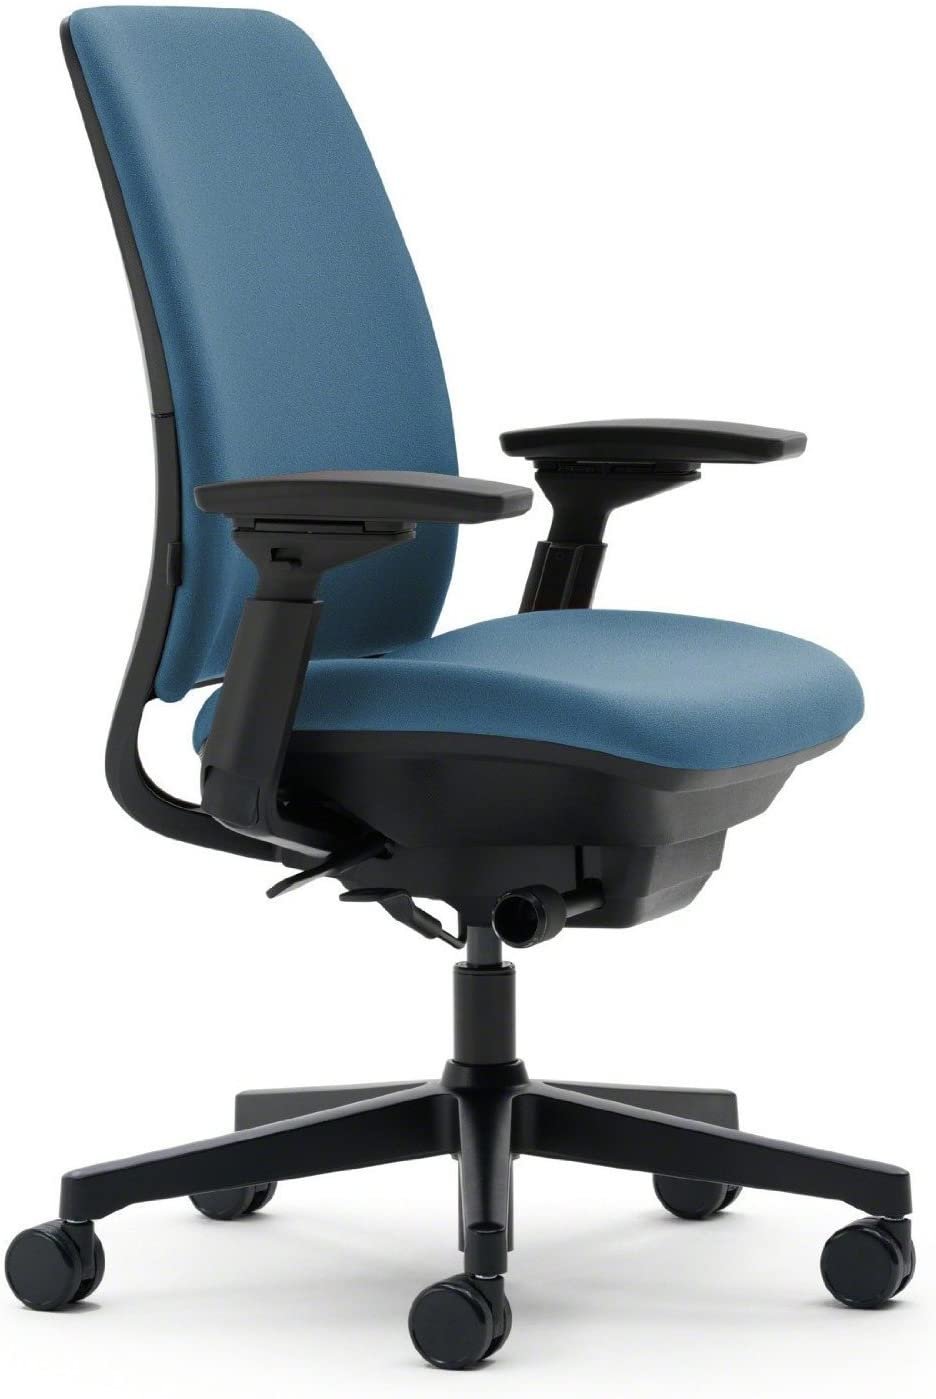 Steelcase Amia Ergonomic Office Chair with Adjustable Back Tension and Arms | Flexible Lumbar with Sliding Seat | Black Frame and Buzz2 Blue Fabric